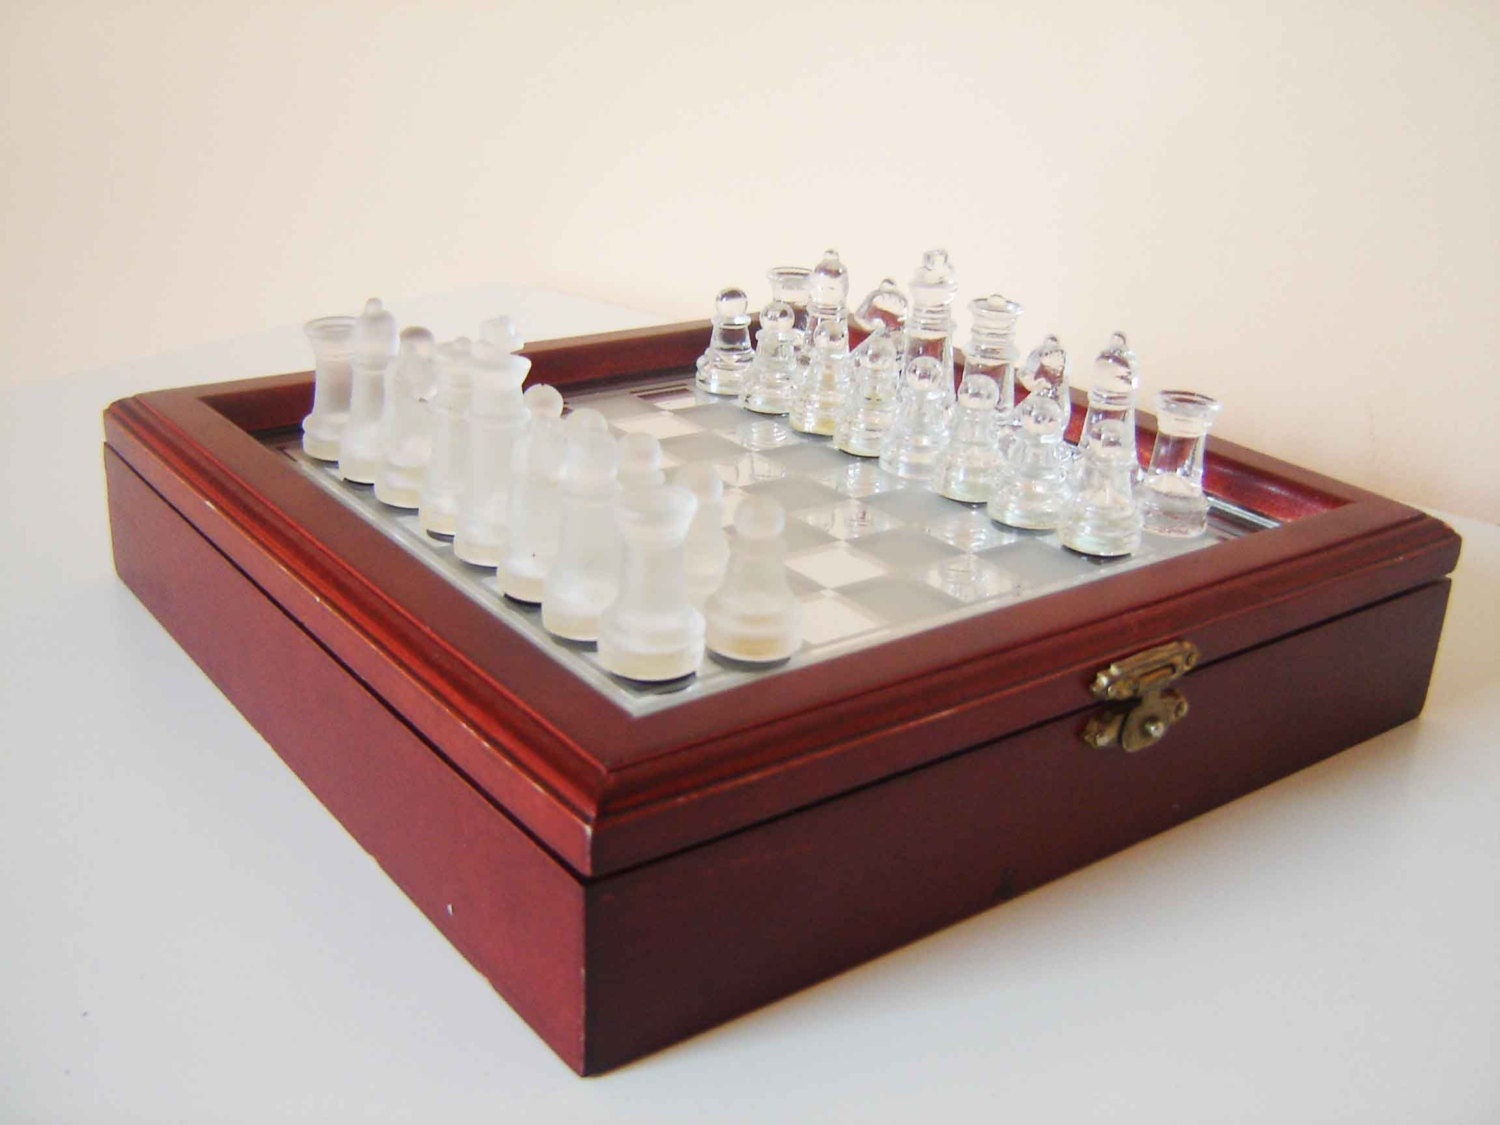 Vintage Luxury Glass Chess Set In Original Wooden Box With